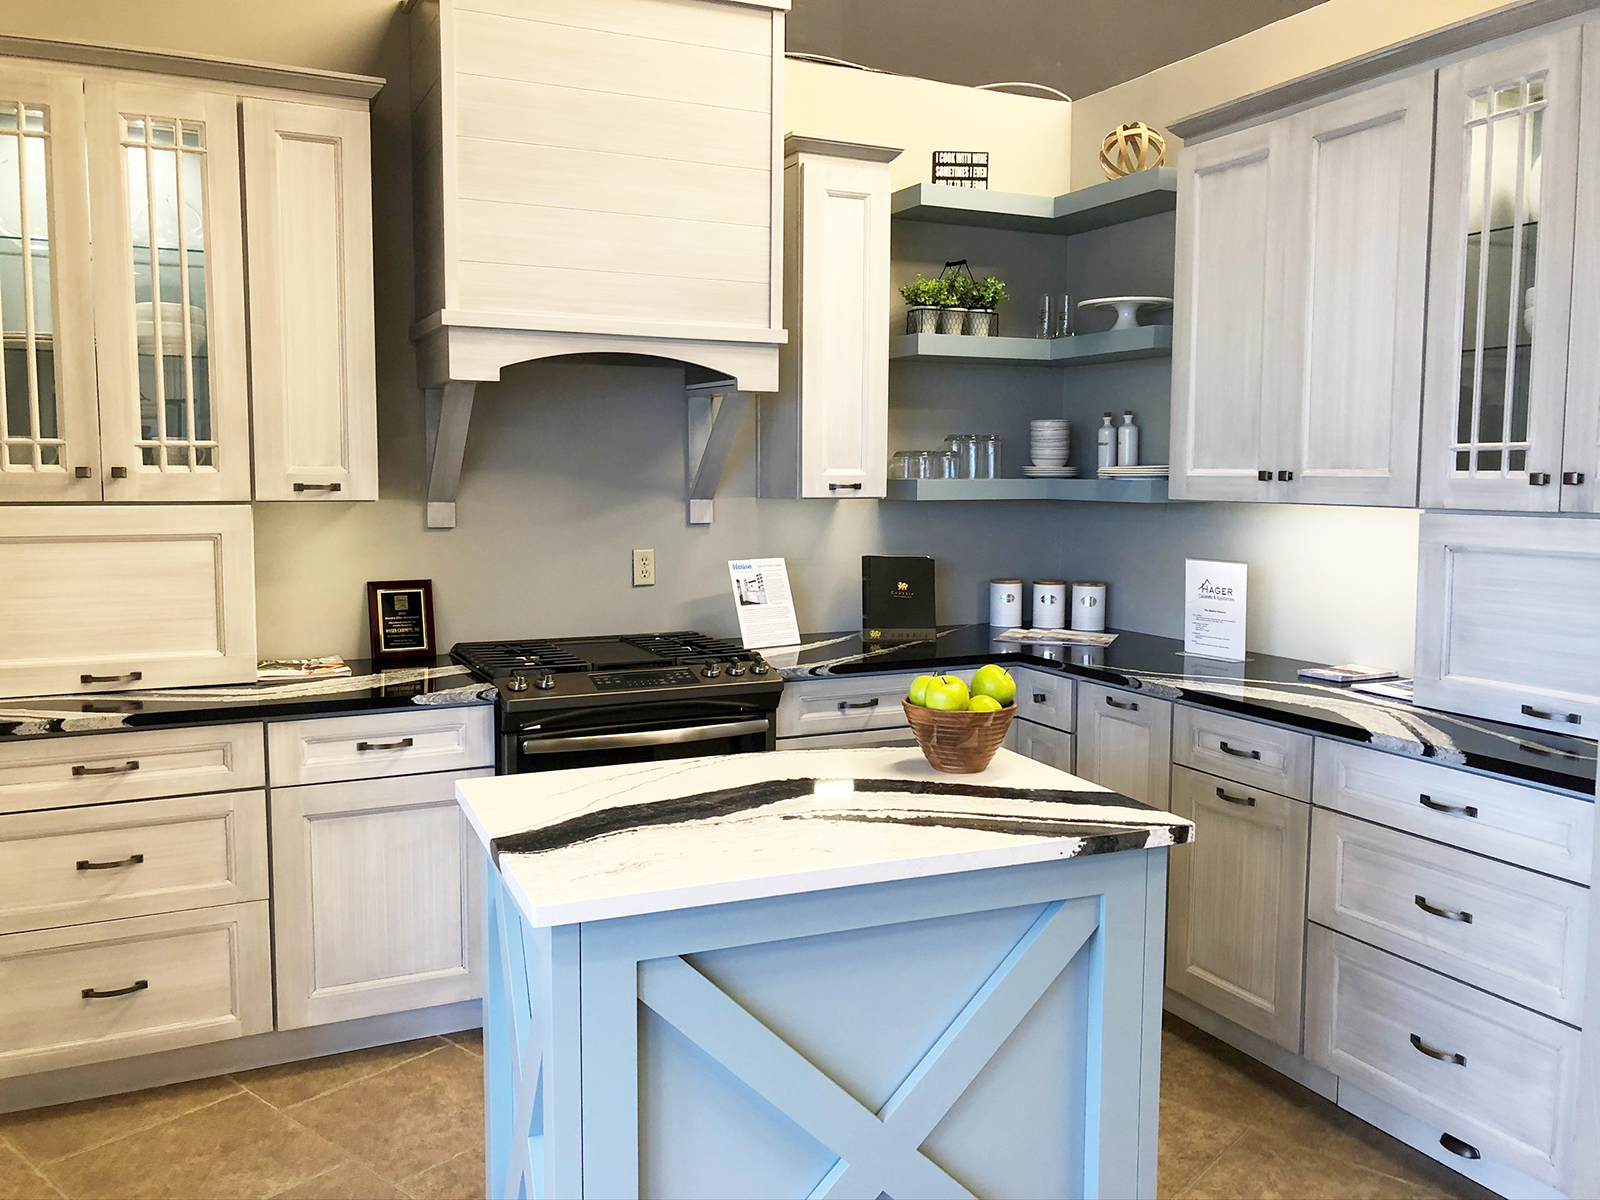 Hager Cabinets Photo Gallery | Hager Cabinets of Lexington ...